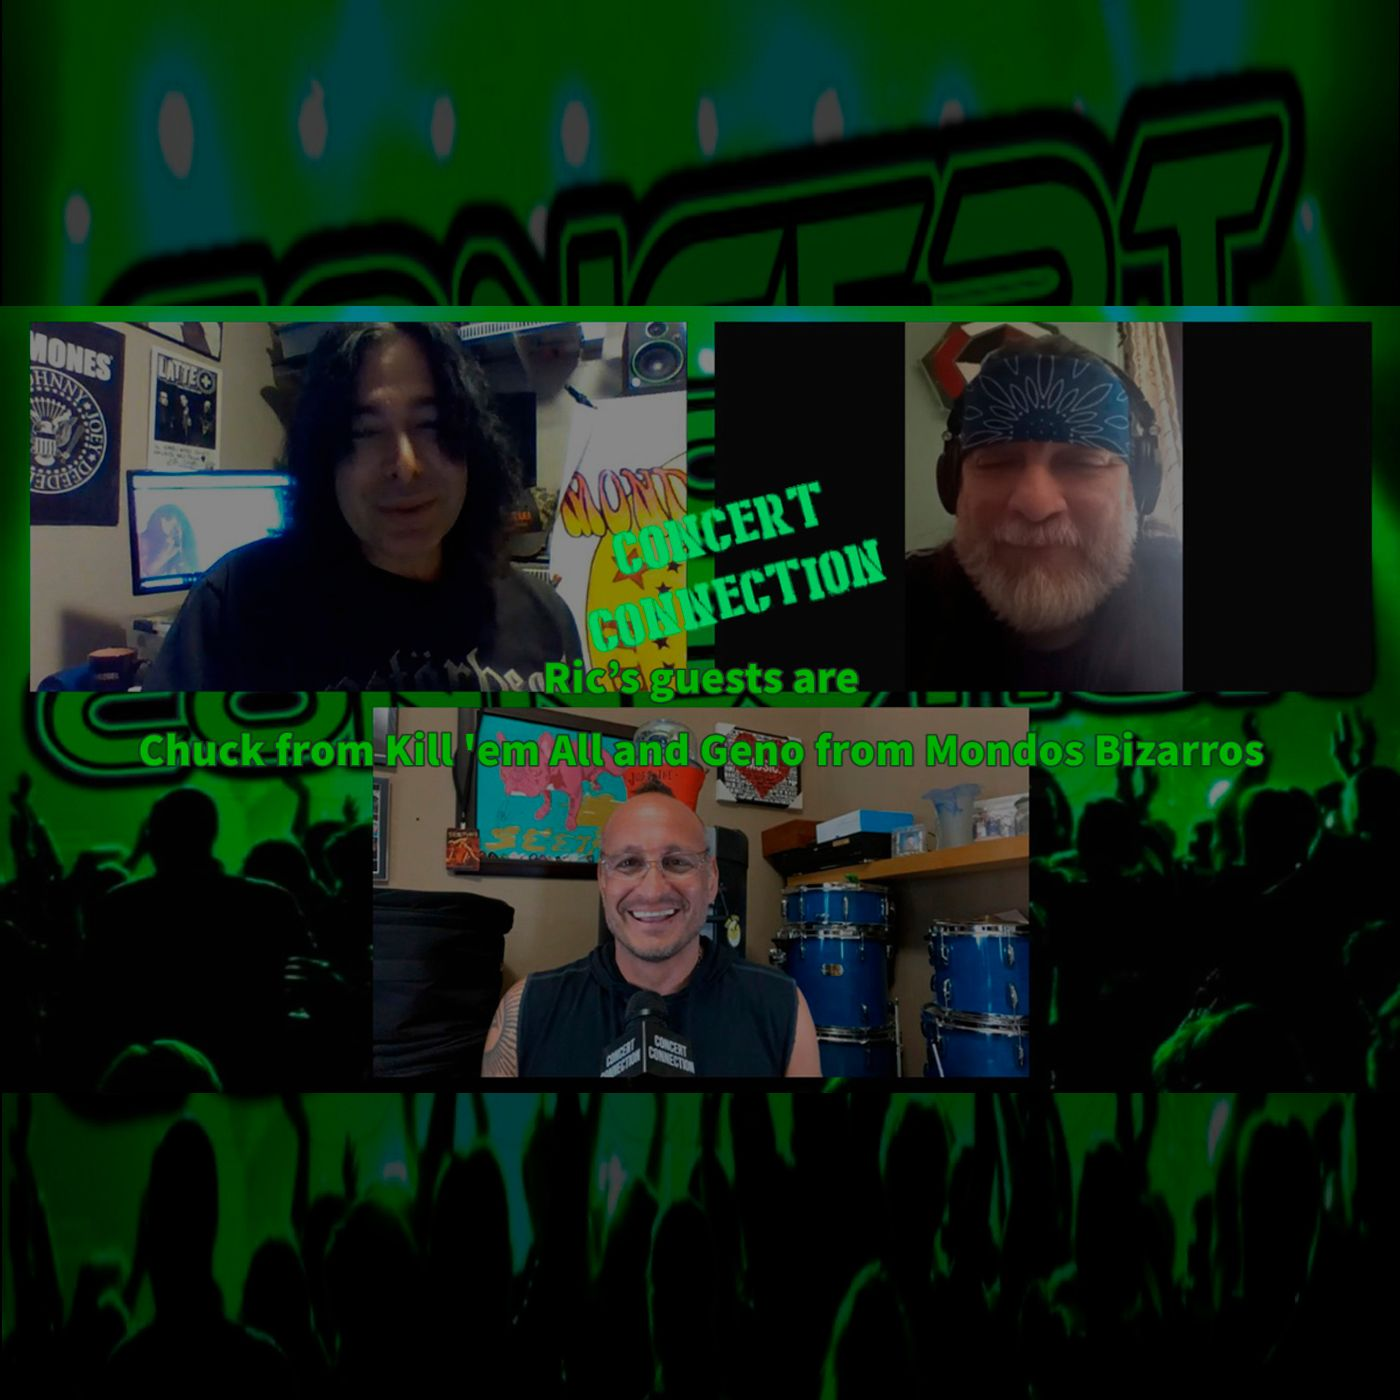 TCC Mar 24 2021 Ric's guests are Chuck from Kill 'em All and Geno from Mondos Bizarros